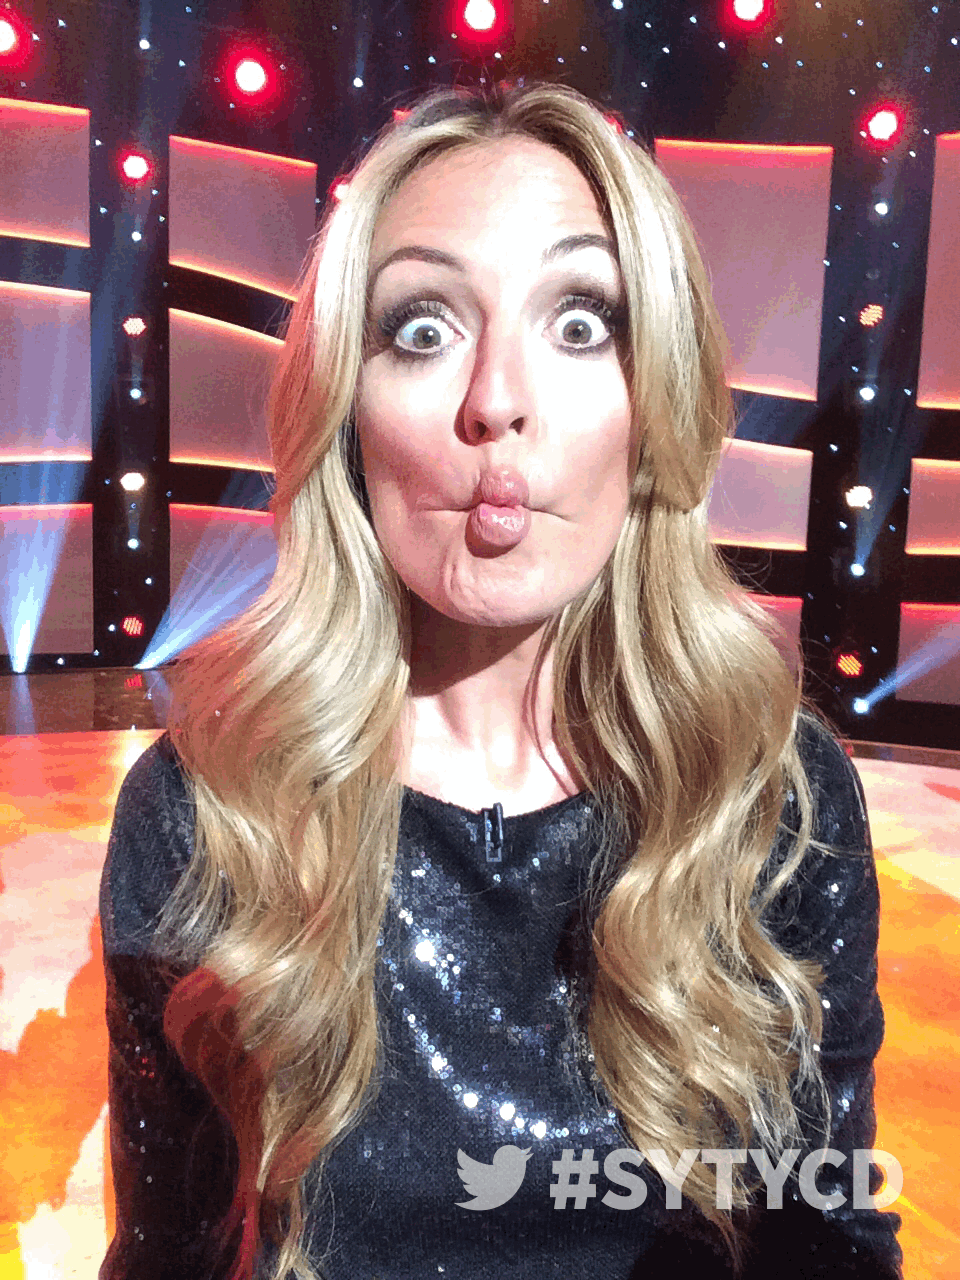 RT @DANCEonFOX: Our host, the lovely @catdeeley, striking a pose... or 4! #SYTYCD http://t.co/8Mq9jndGIU